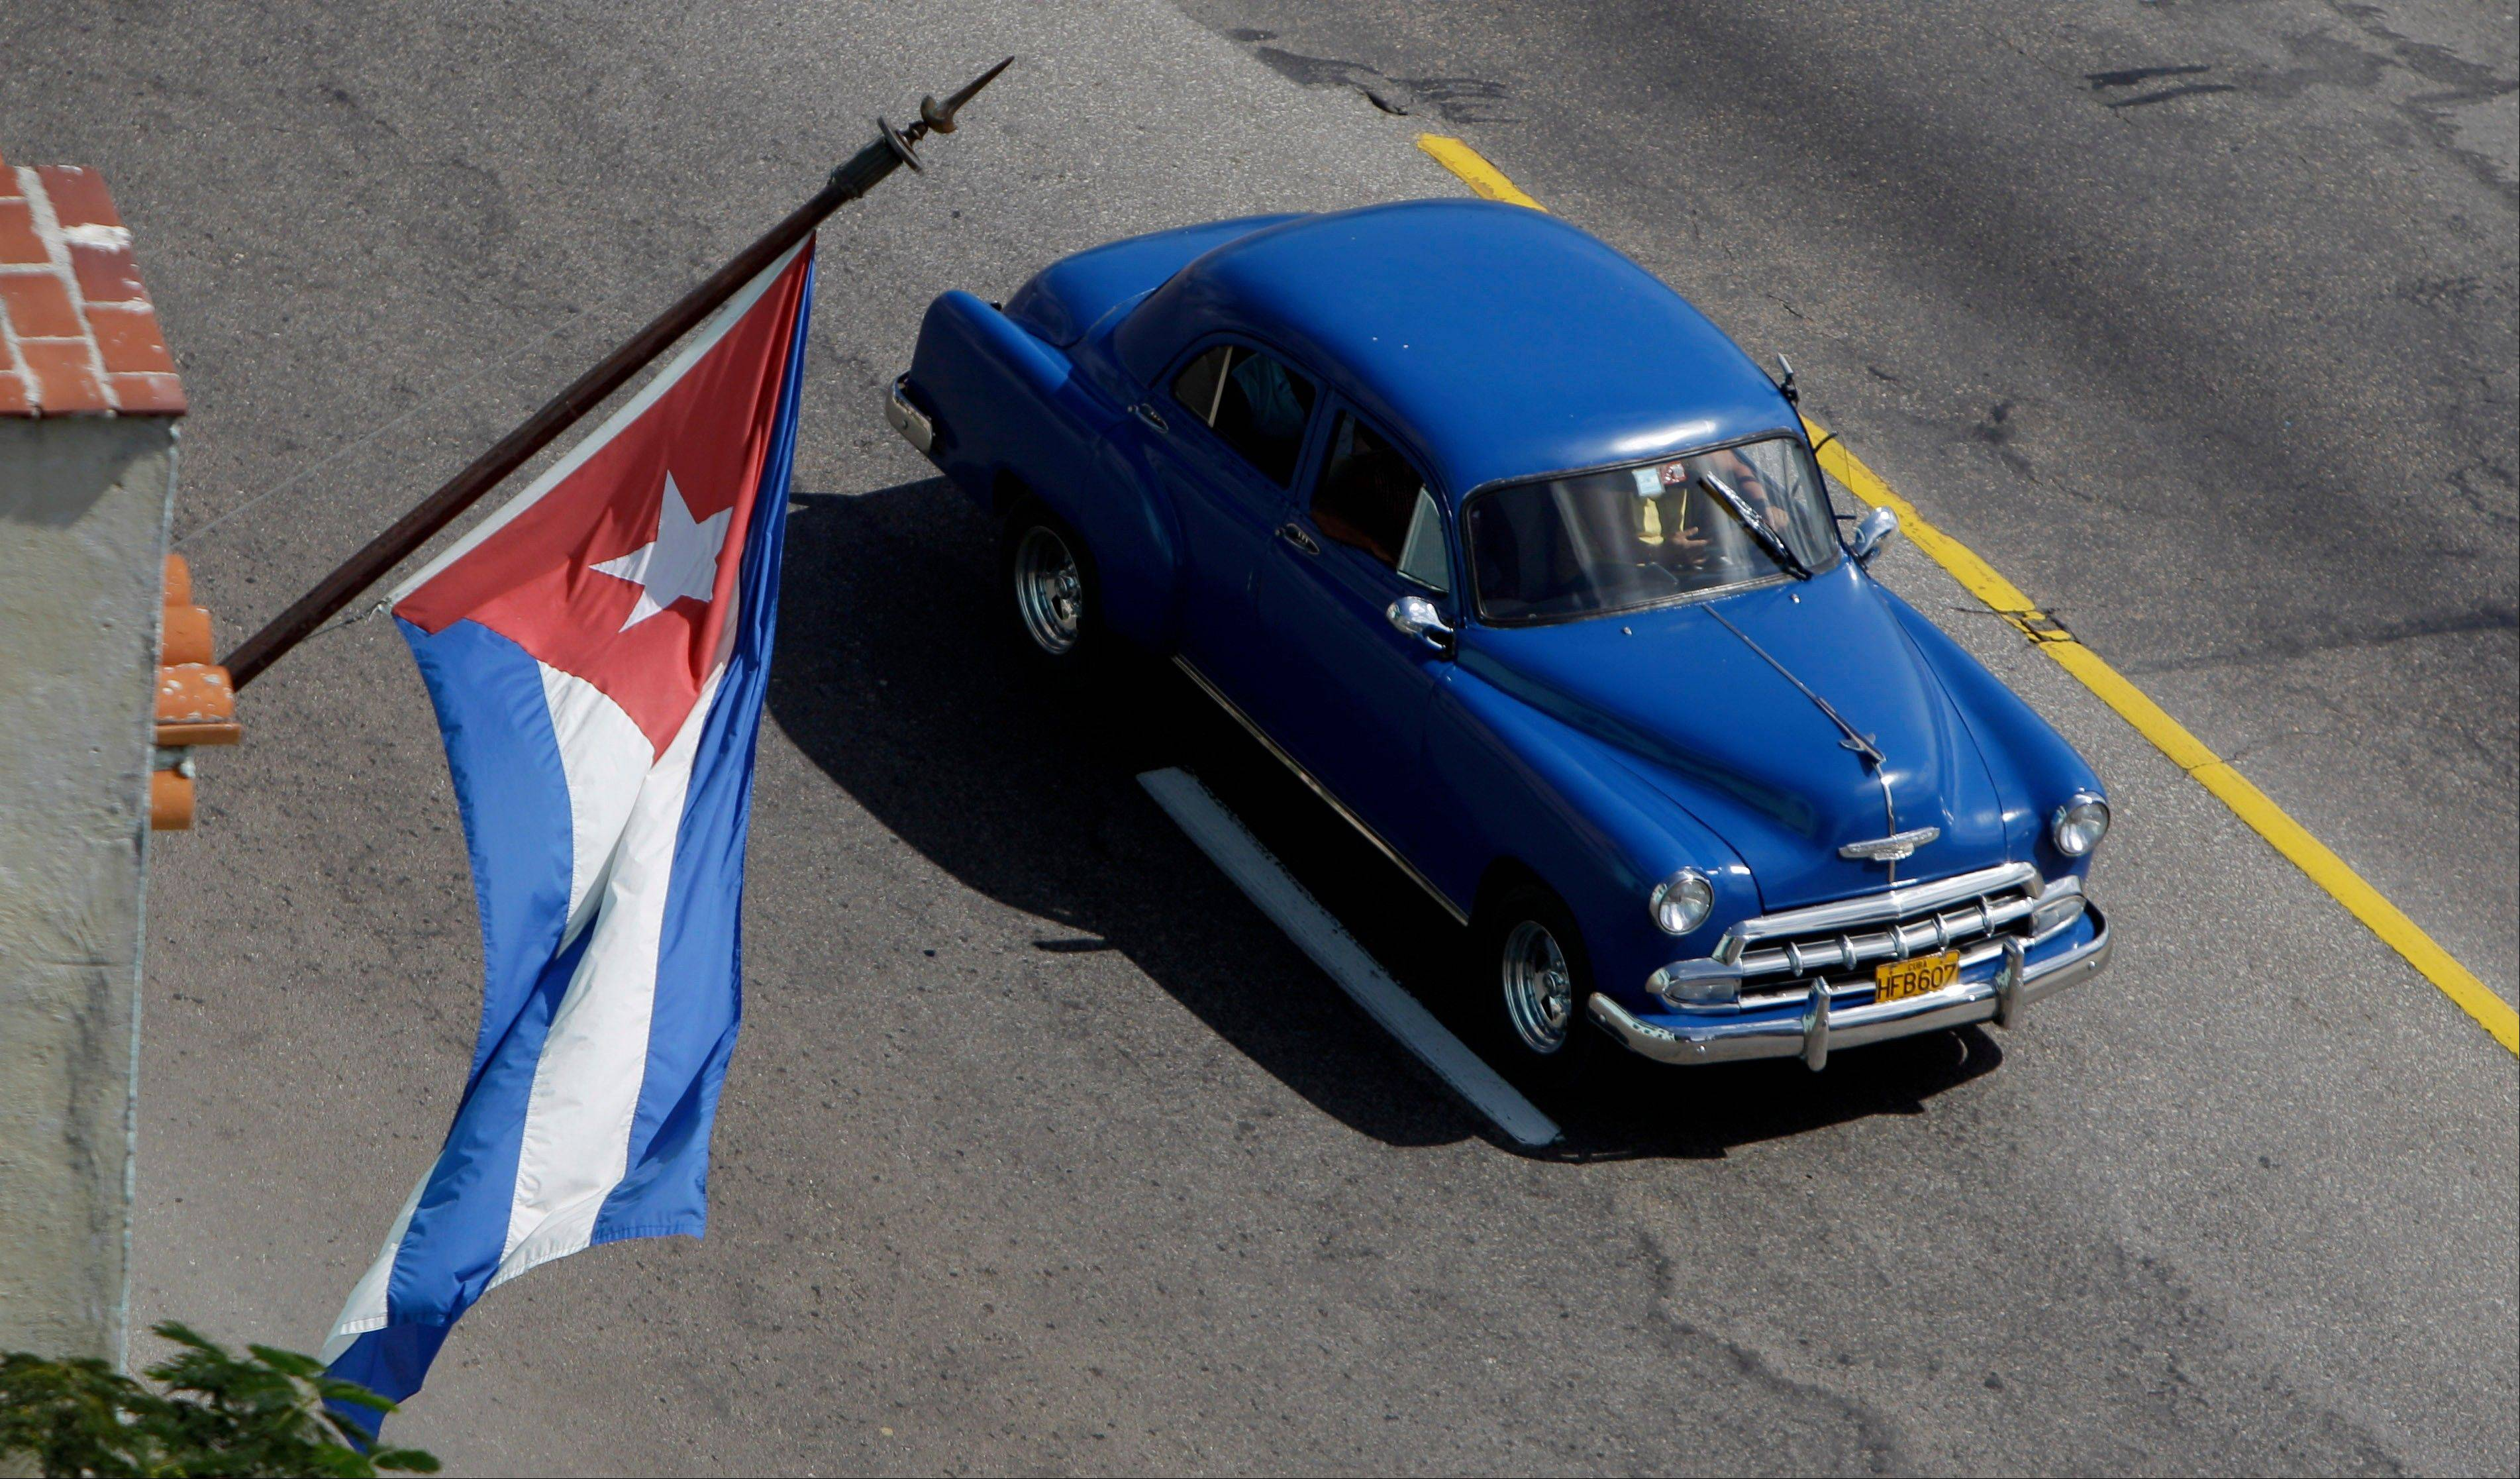 An American classic car drives past a government office flying Cuba�s national flag in Havana, Cuba, Wednesday. Cuba legalized the sale and purchase of automobiles for all citizens on Wednesday, another major step in the communist run island�s economic transformation. The 40-page Official Gazette that published the law which takes effect Oct. 1 also says that Cubans who leave the island for good can transfer ownership of their car to a relative or sell it outright. Previously, the state could seize the automobiles of those who emigrated.